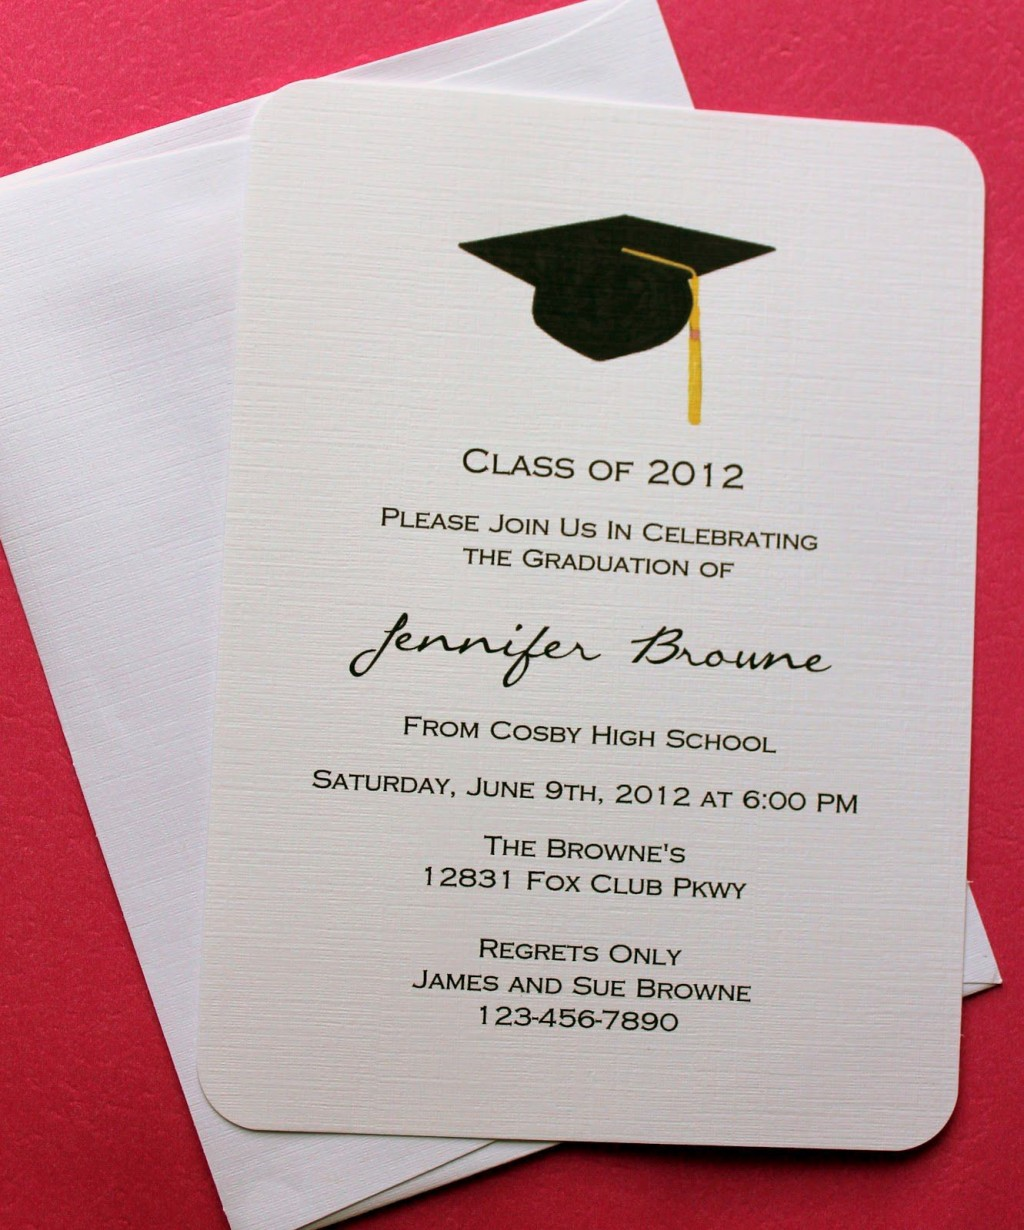 006 Archaicawful Free Graduation Announcement Template High Def  Invitation Microsoft Word Printable KindergartenLarge